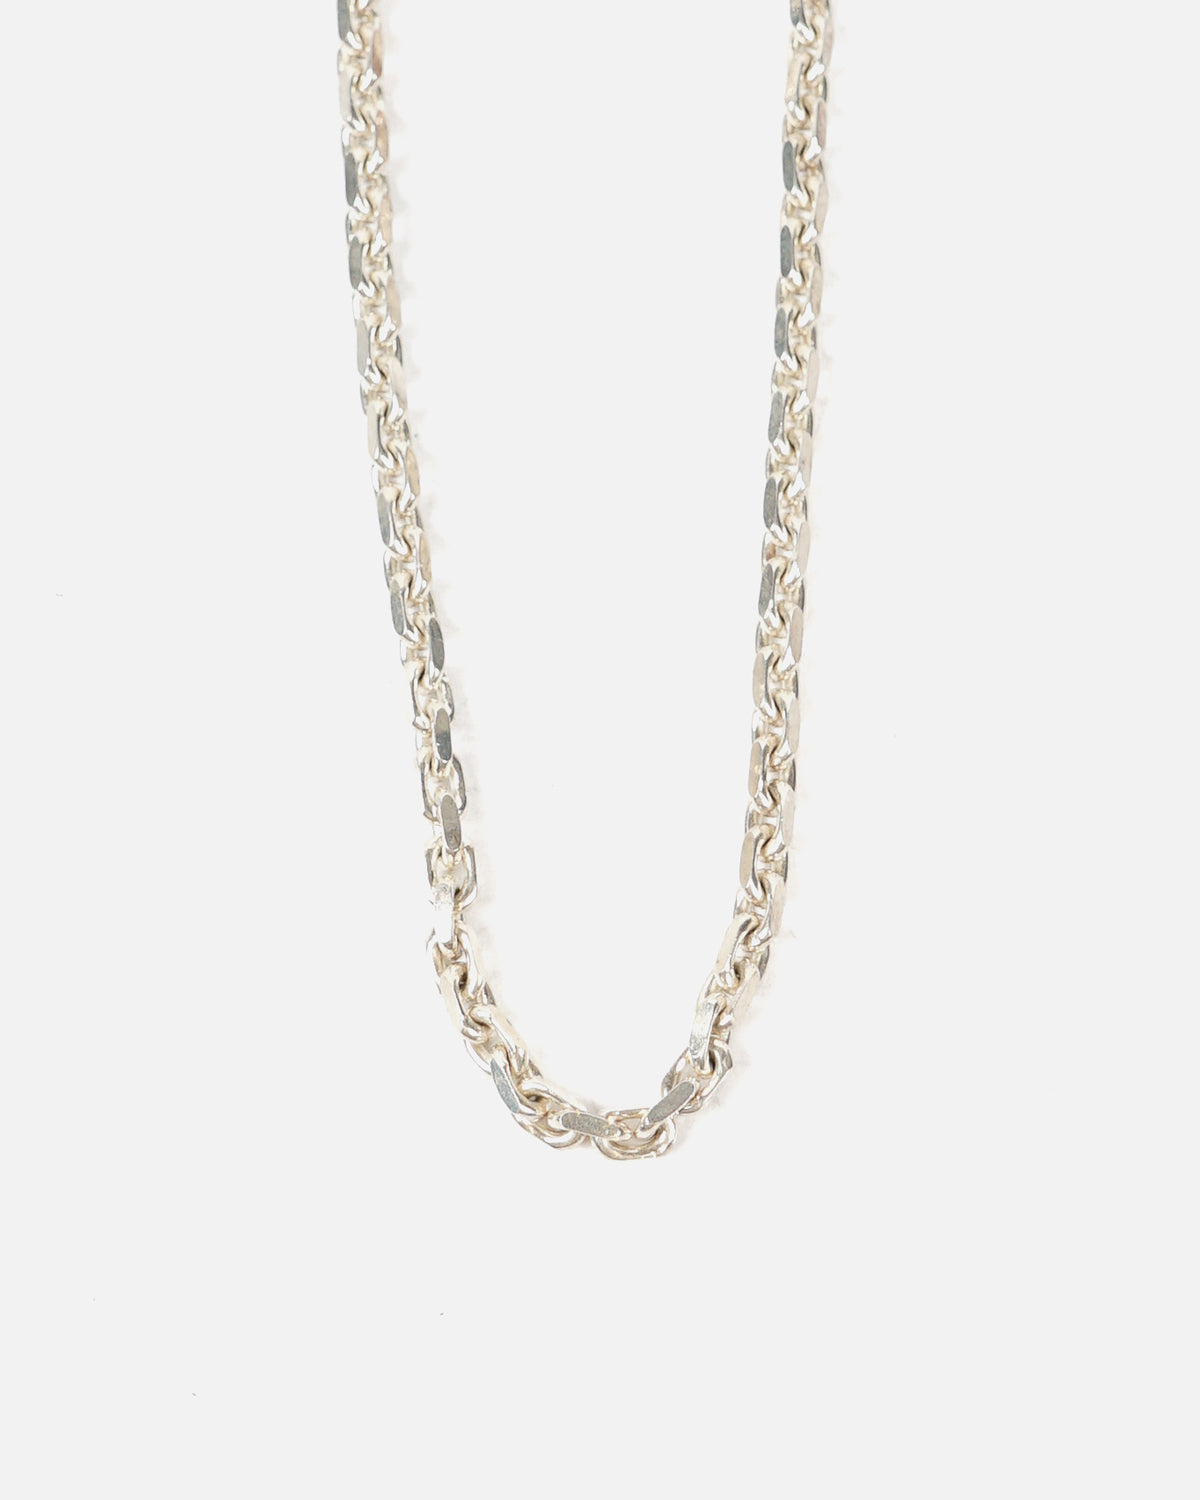 Silver Linked Chain Necklace